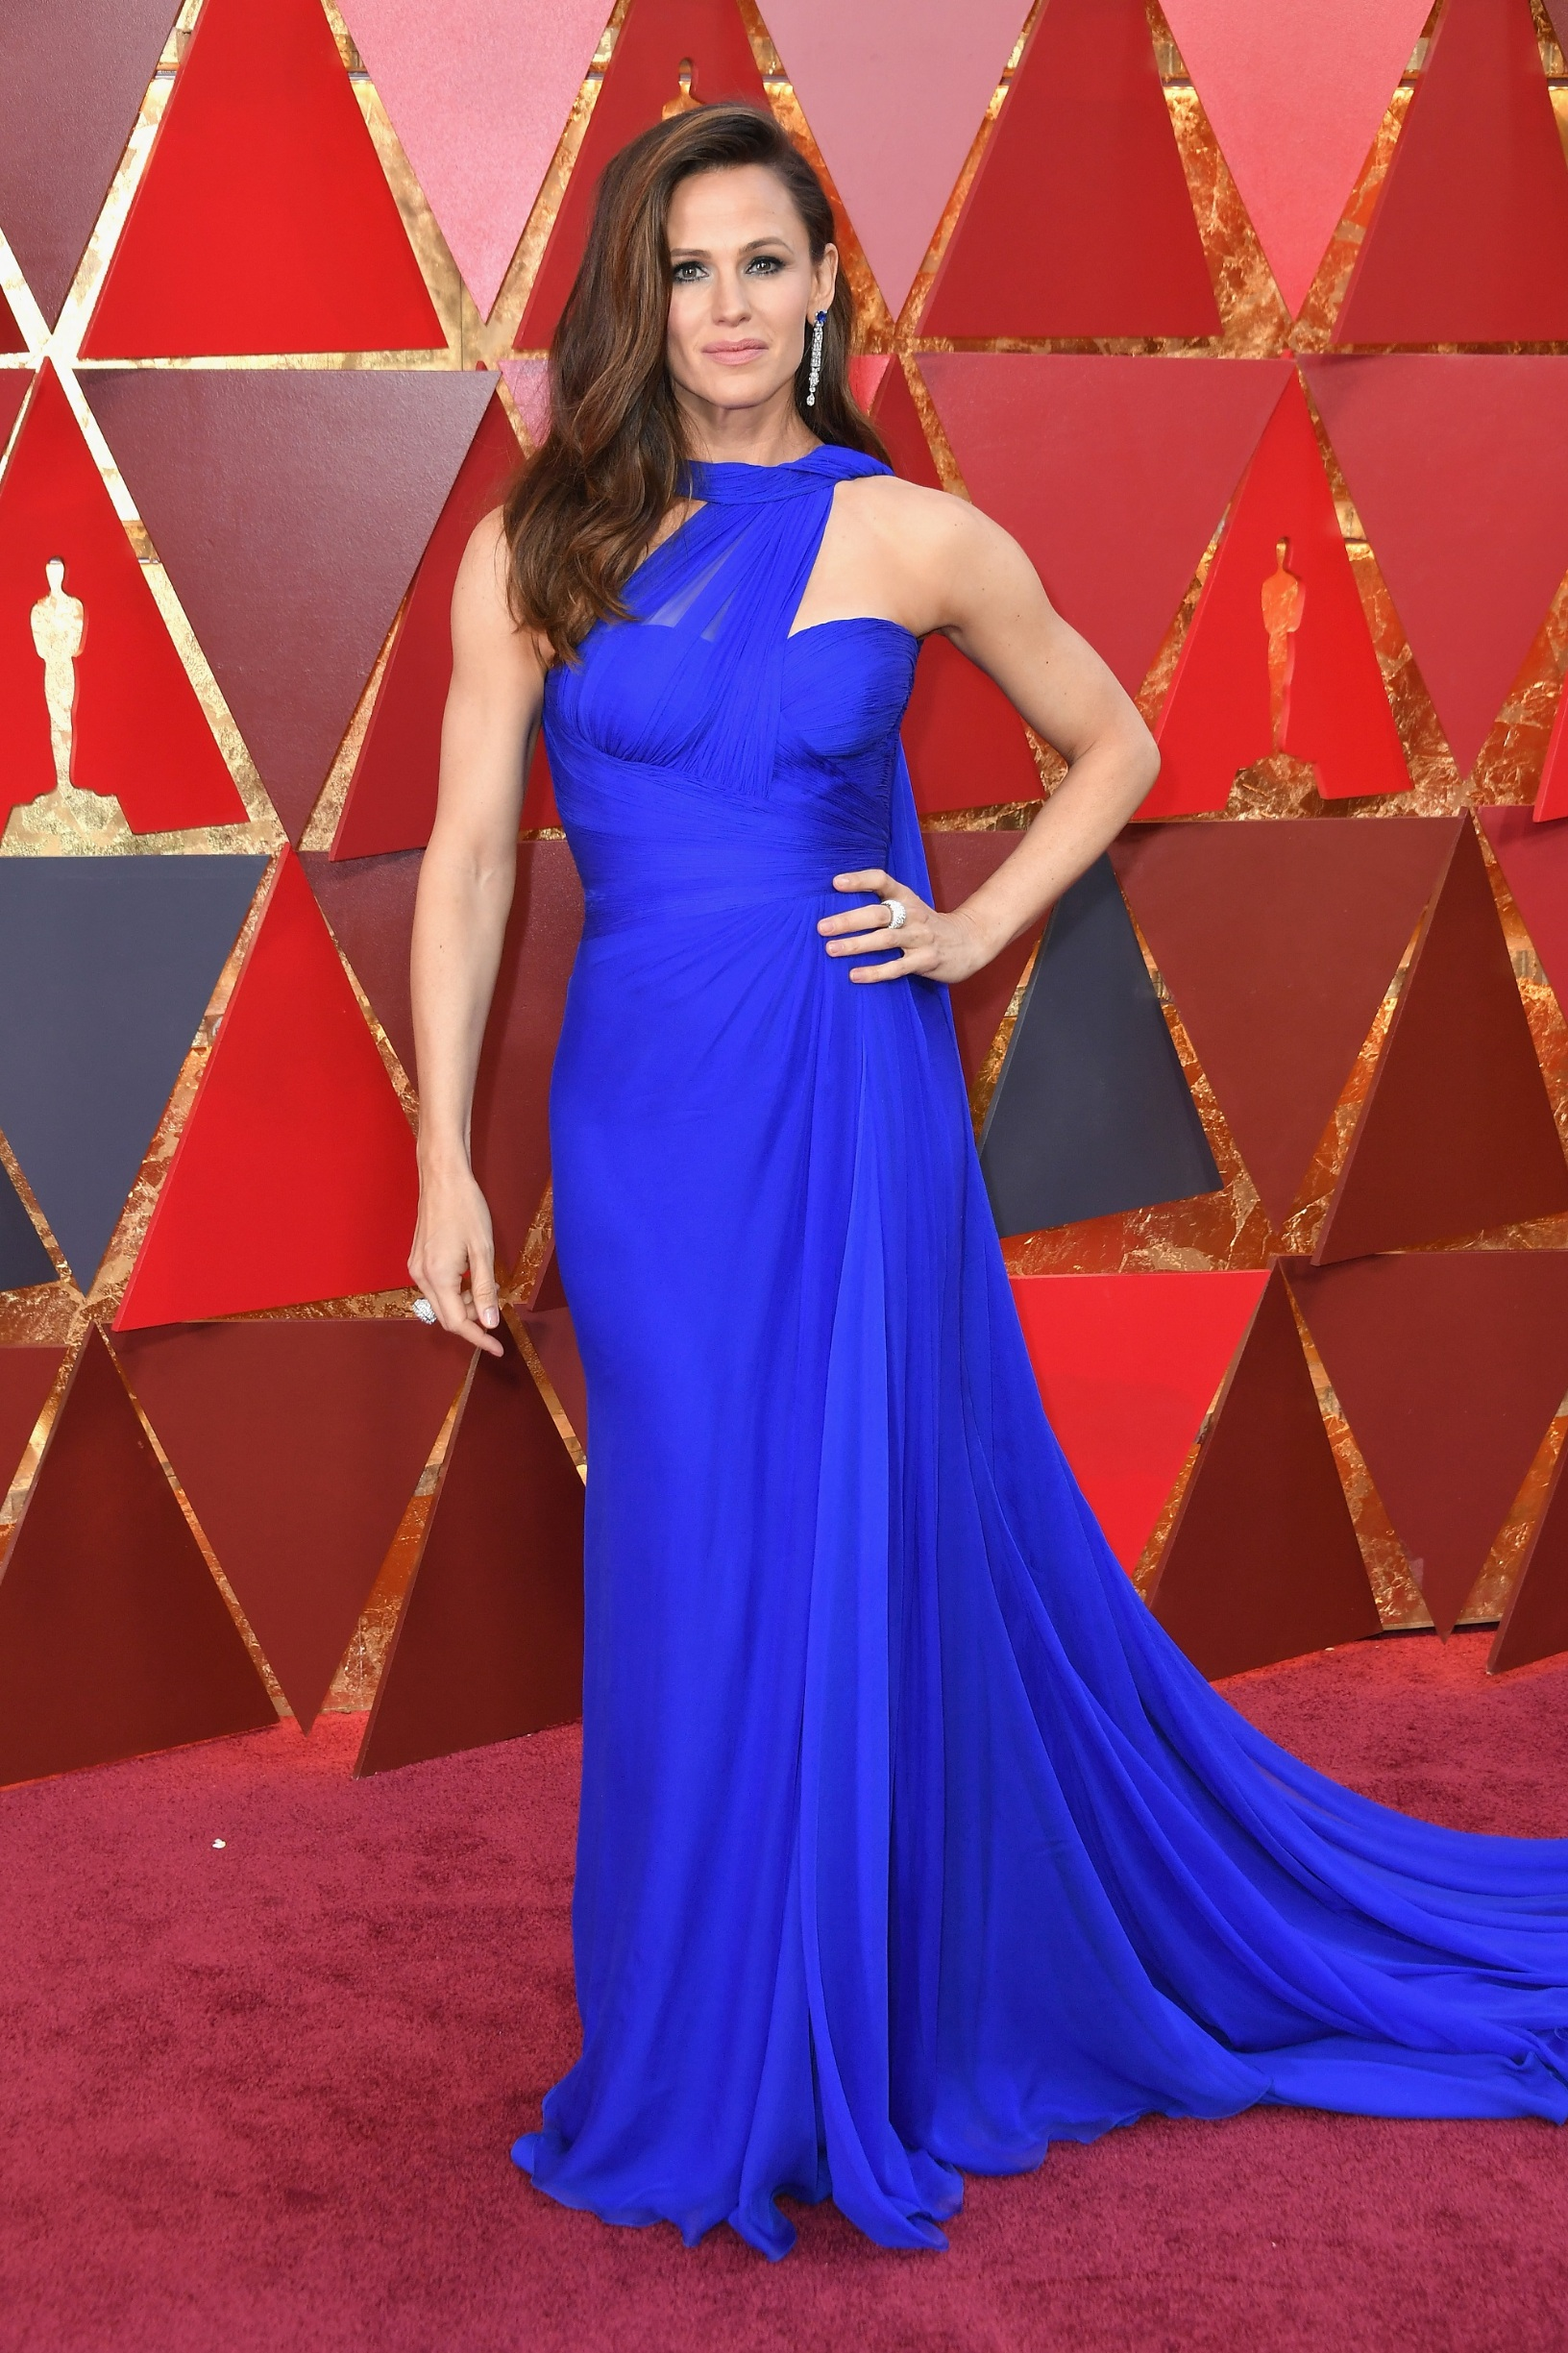 HOLLYWOOD, CA - MARCH 04:  Jennifer Garner attends the 90th Annual Academy Awards at Hollywood & Highland Center on March 4, 2018 in Hollywood, California.  (Photo by Neilson Barnard/Getty Images)